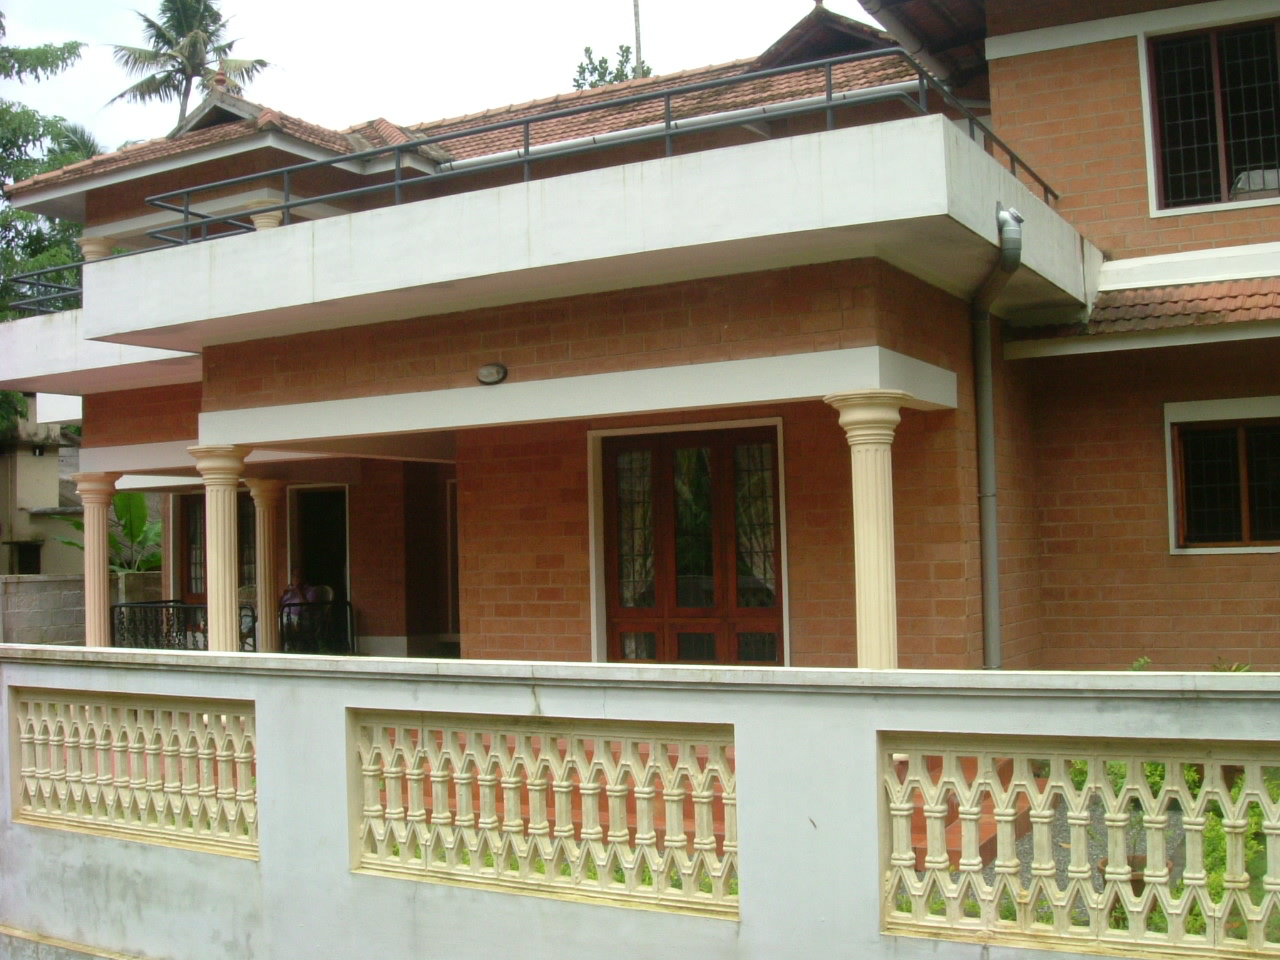 10 Cents Land With House For Sale in Ponekkara, Edappally, Ernakulam